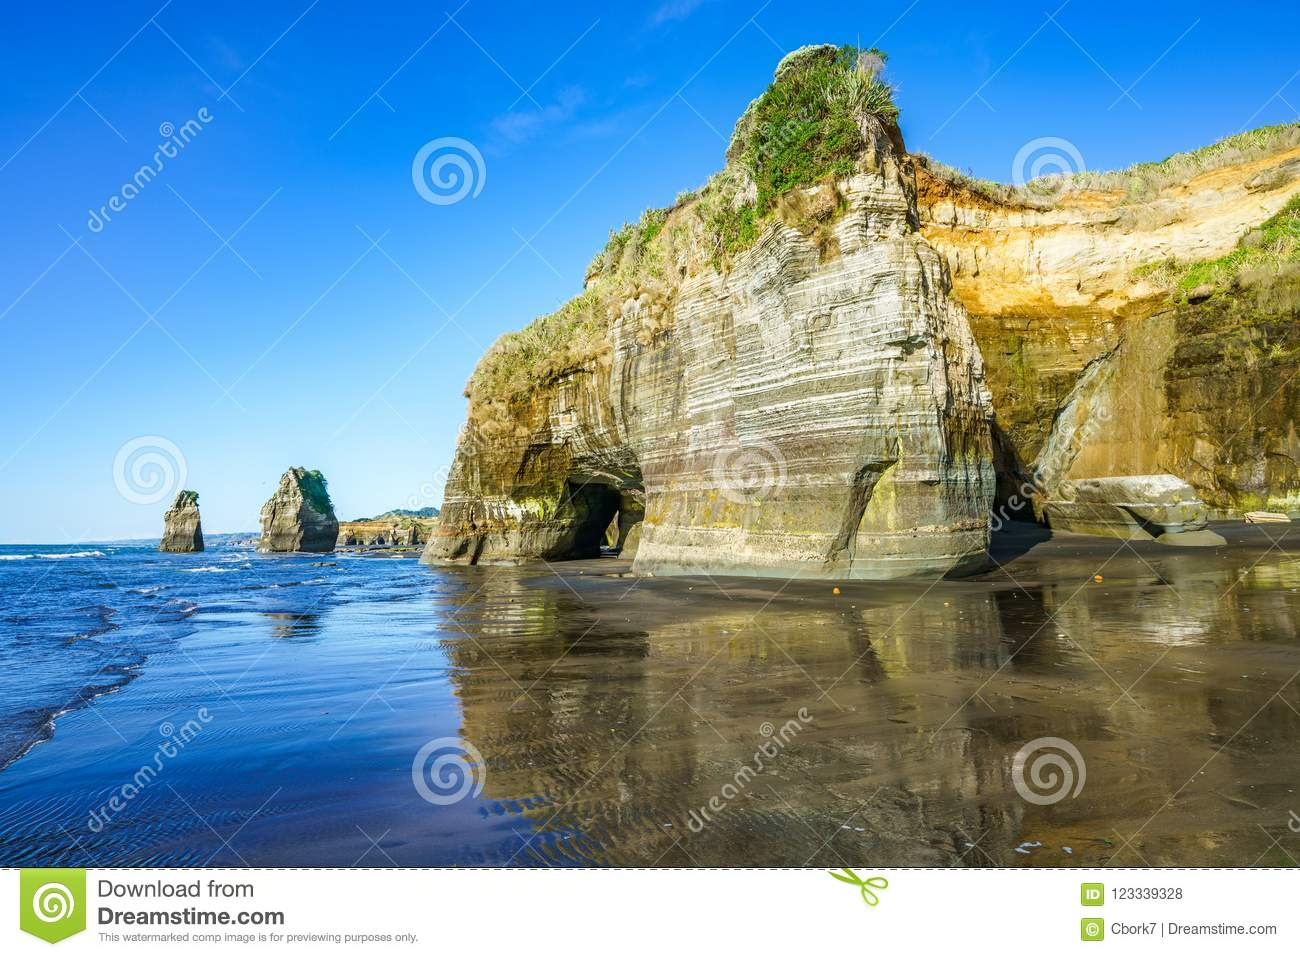 On the beach, 3 sisters and elephant rock, new zealand 15